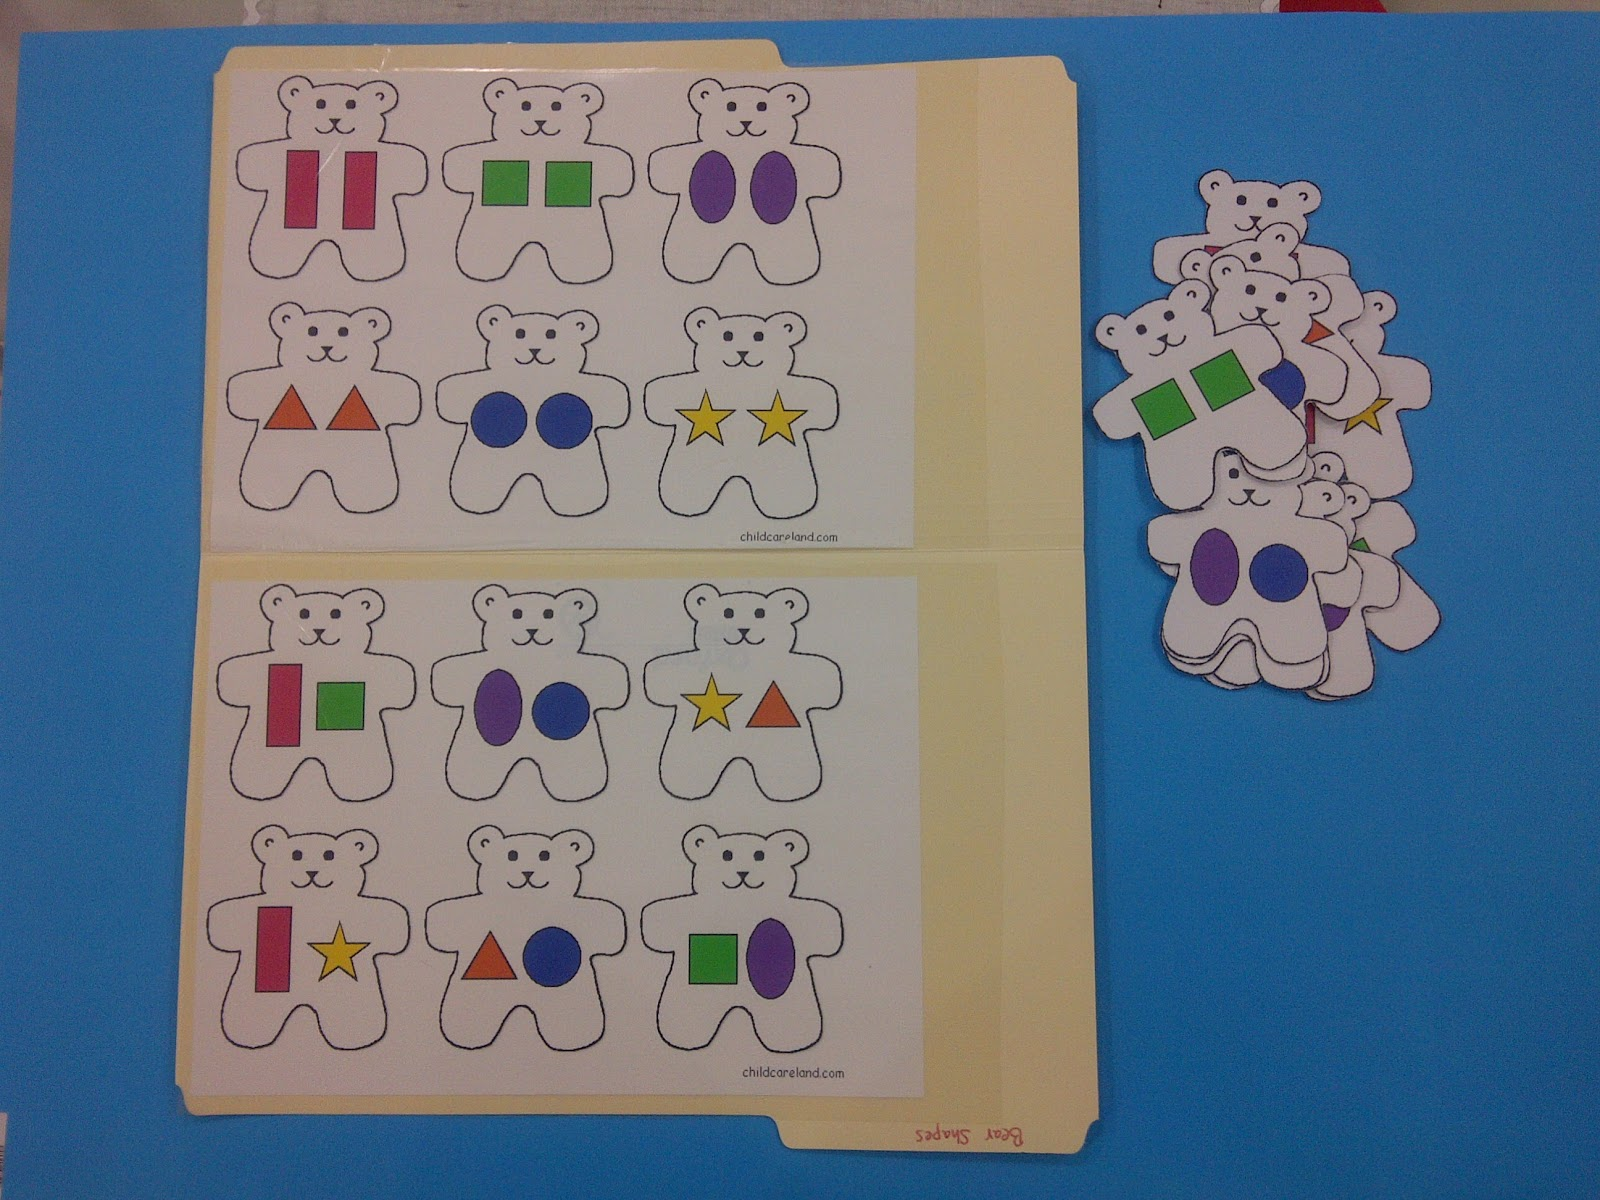 Bright image intended for free printable file folder games for preschool